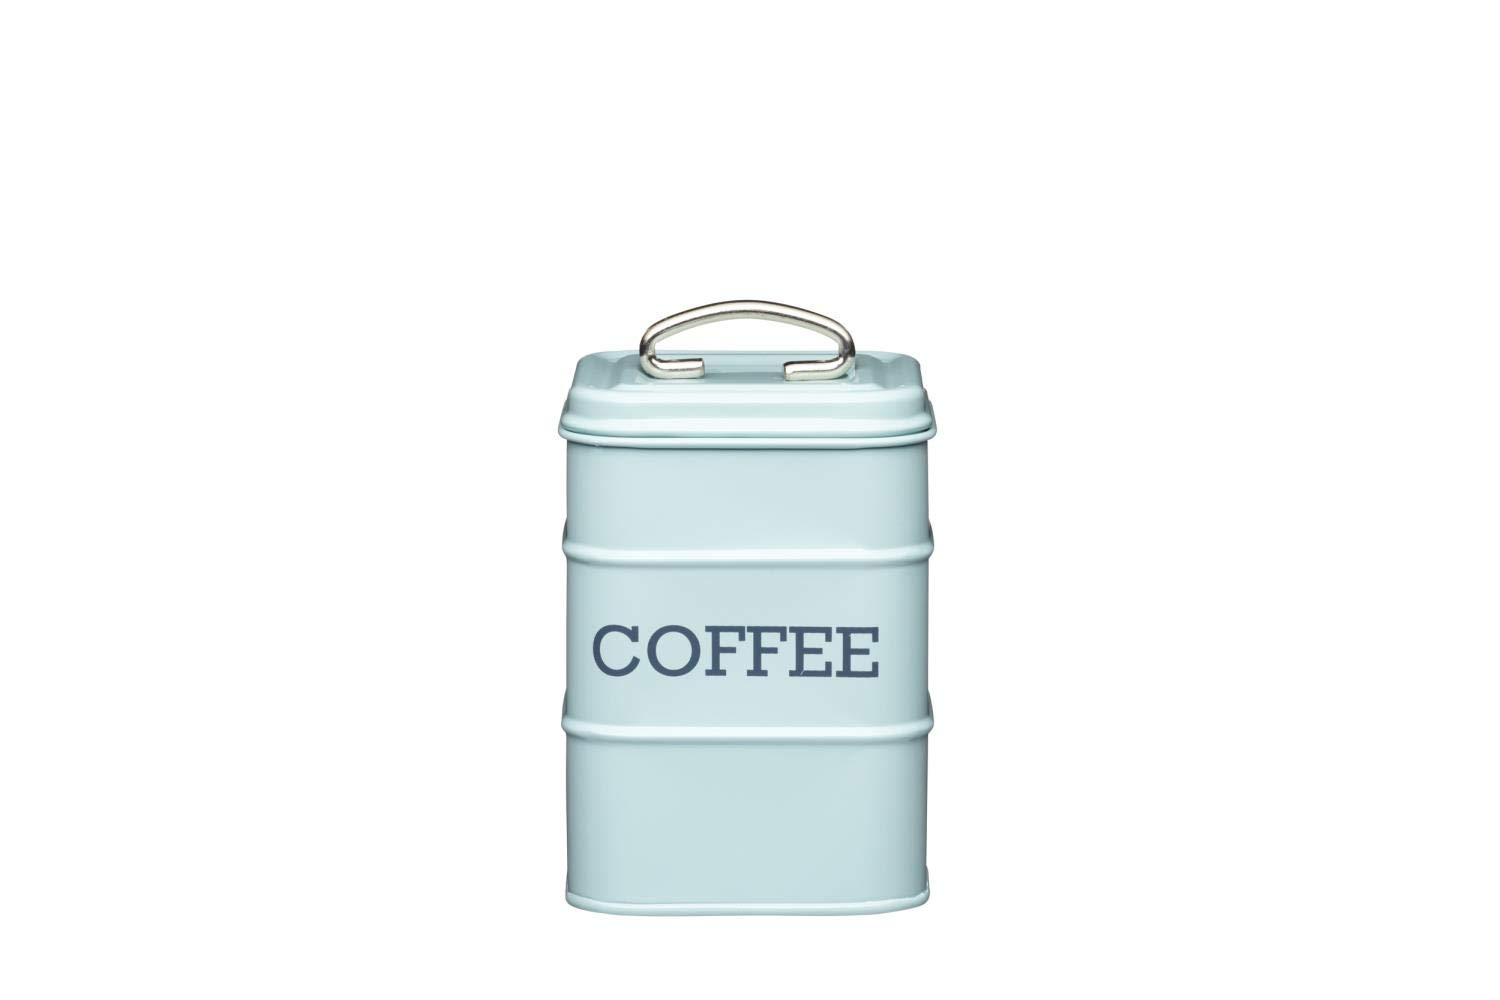 Tee Zucker Living Nostalgia blau KitchenCraft CREAFLOR HOME 3er Set Vorratsdosen Kaffee